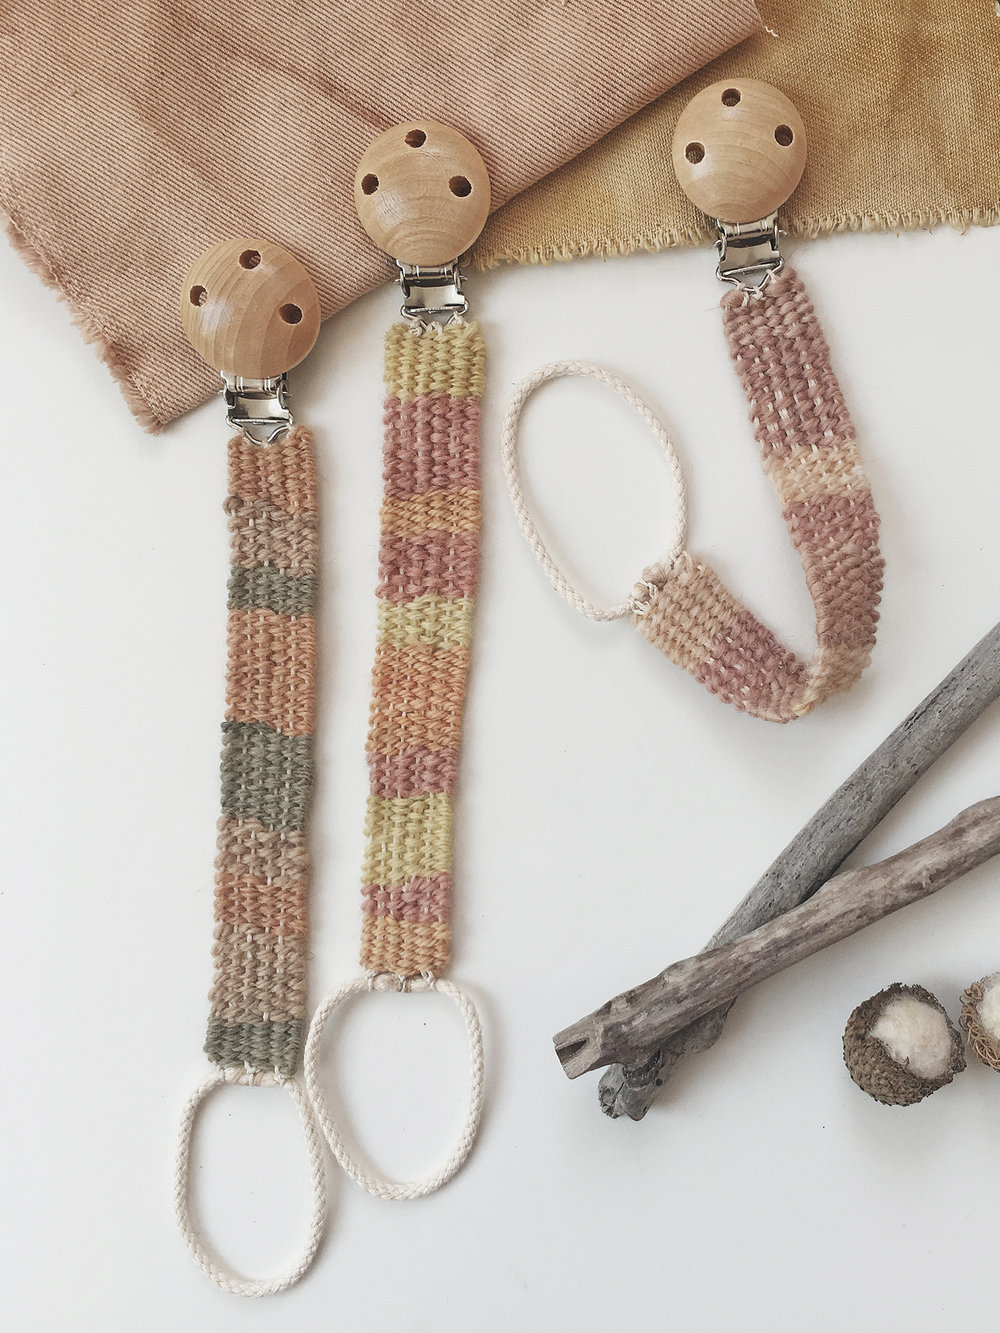 Handwoven pacifier clips